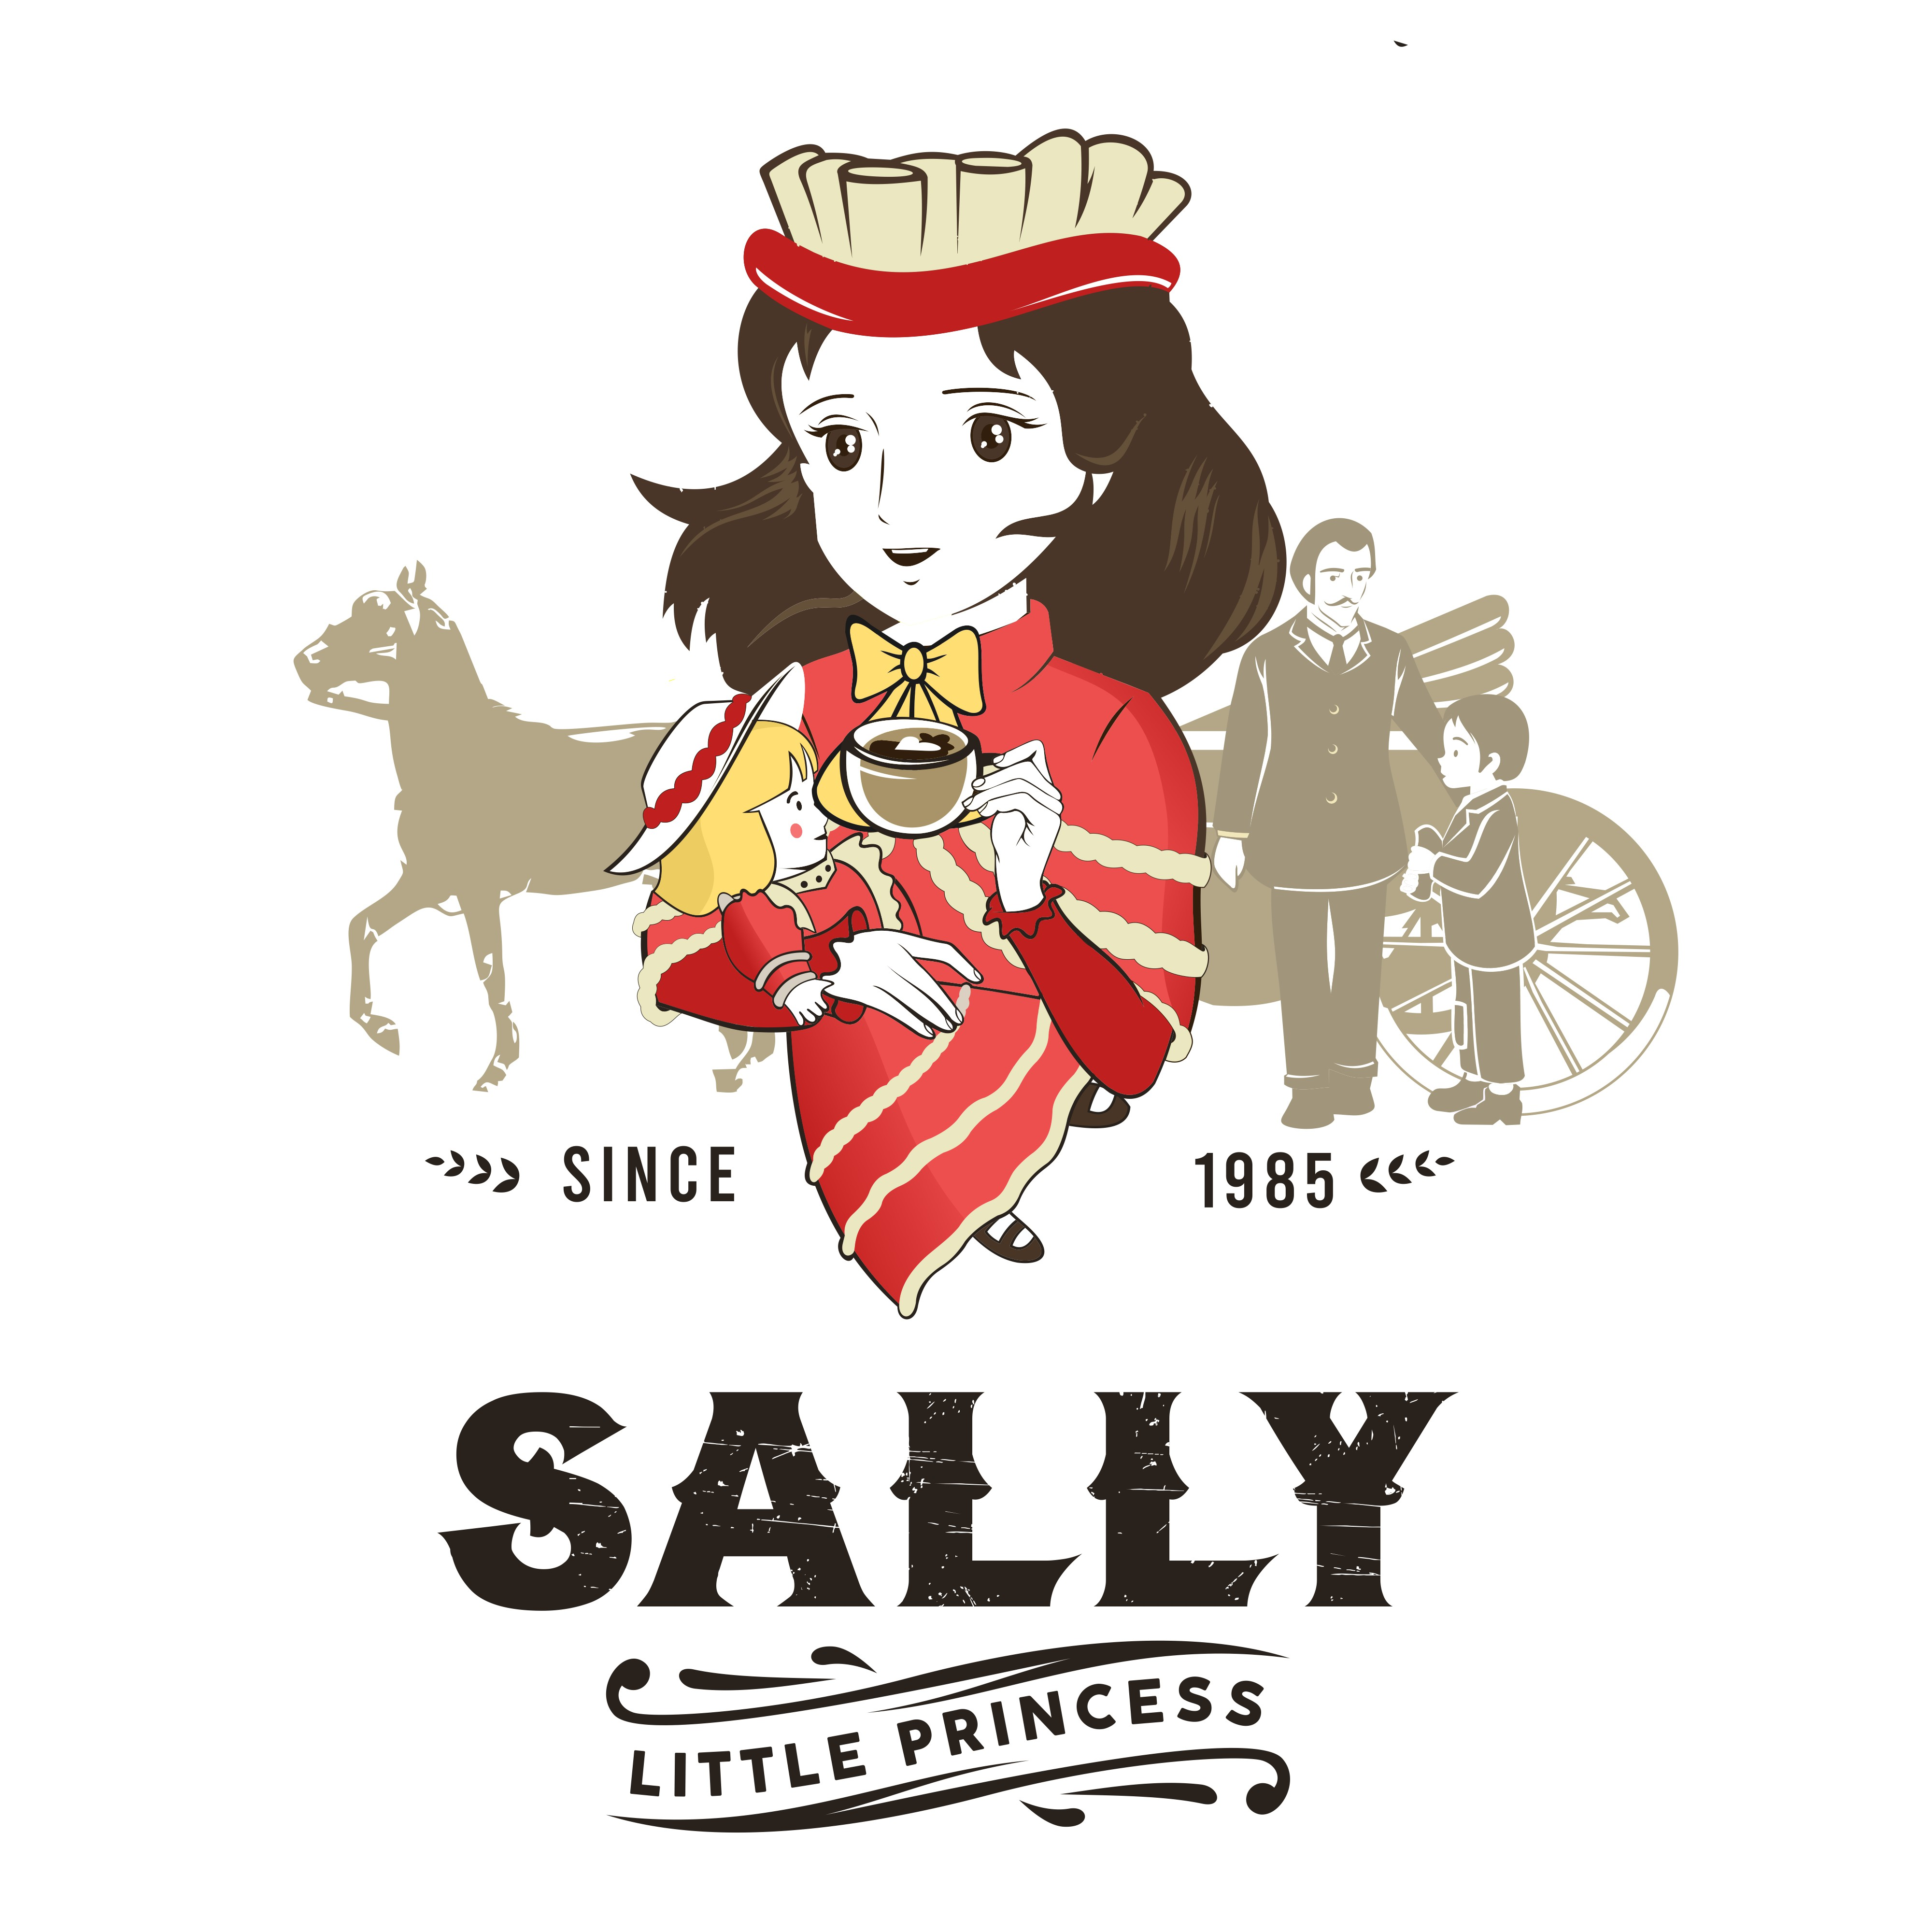 Sally's personal coffee shop